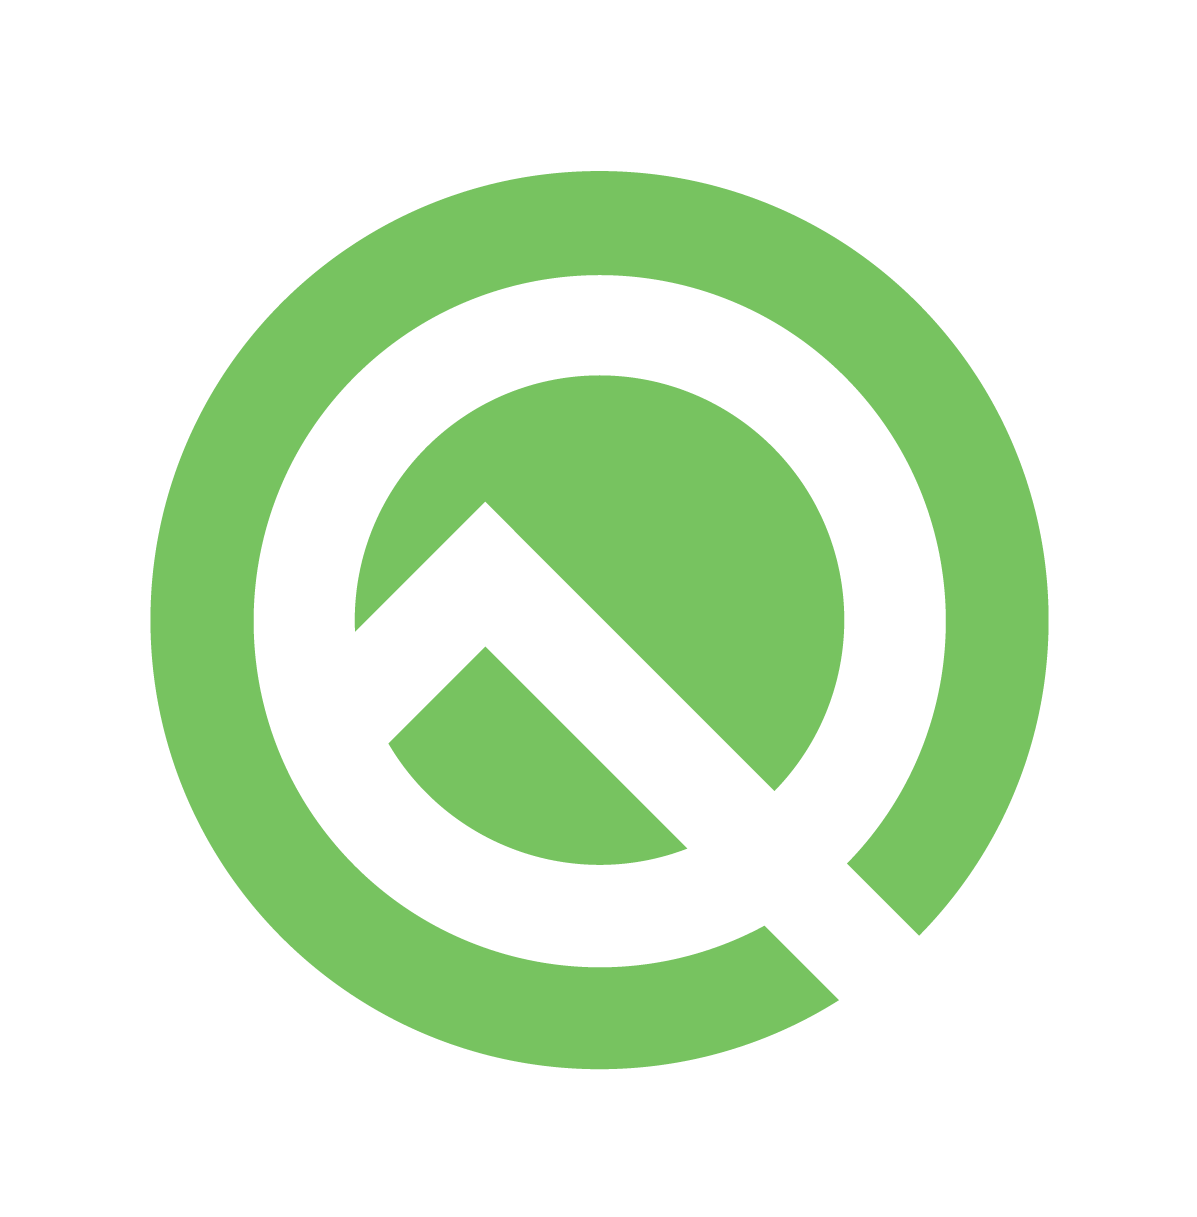 Introducing Android Q Beta